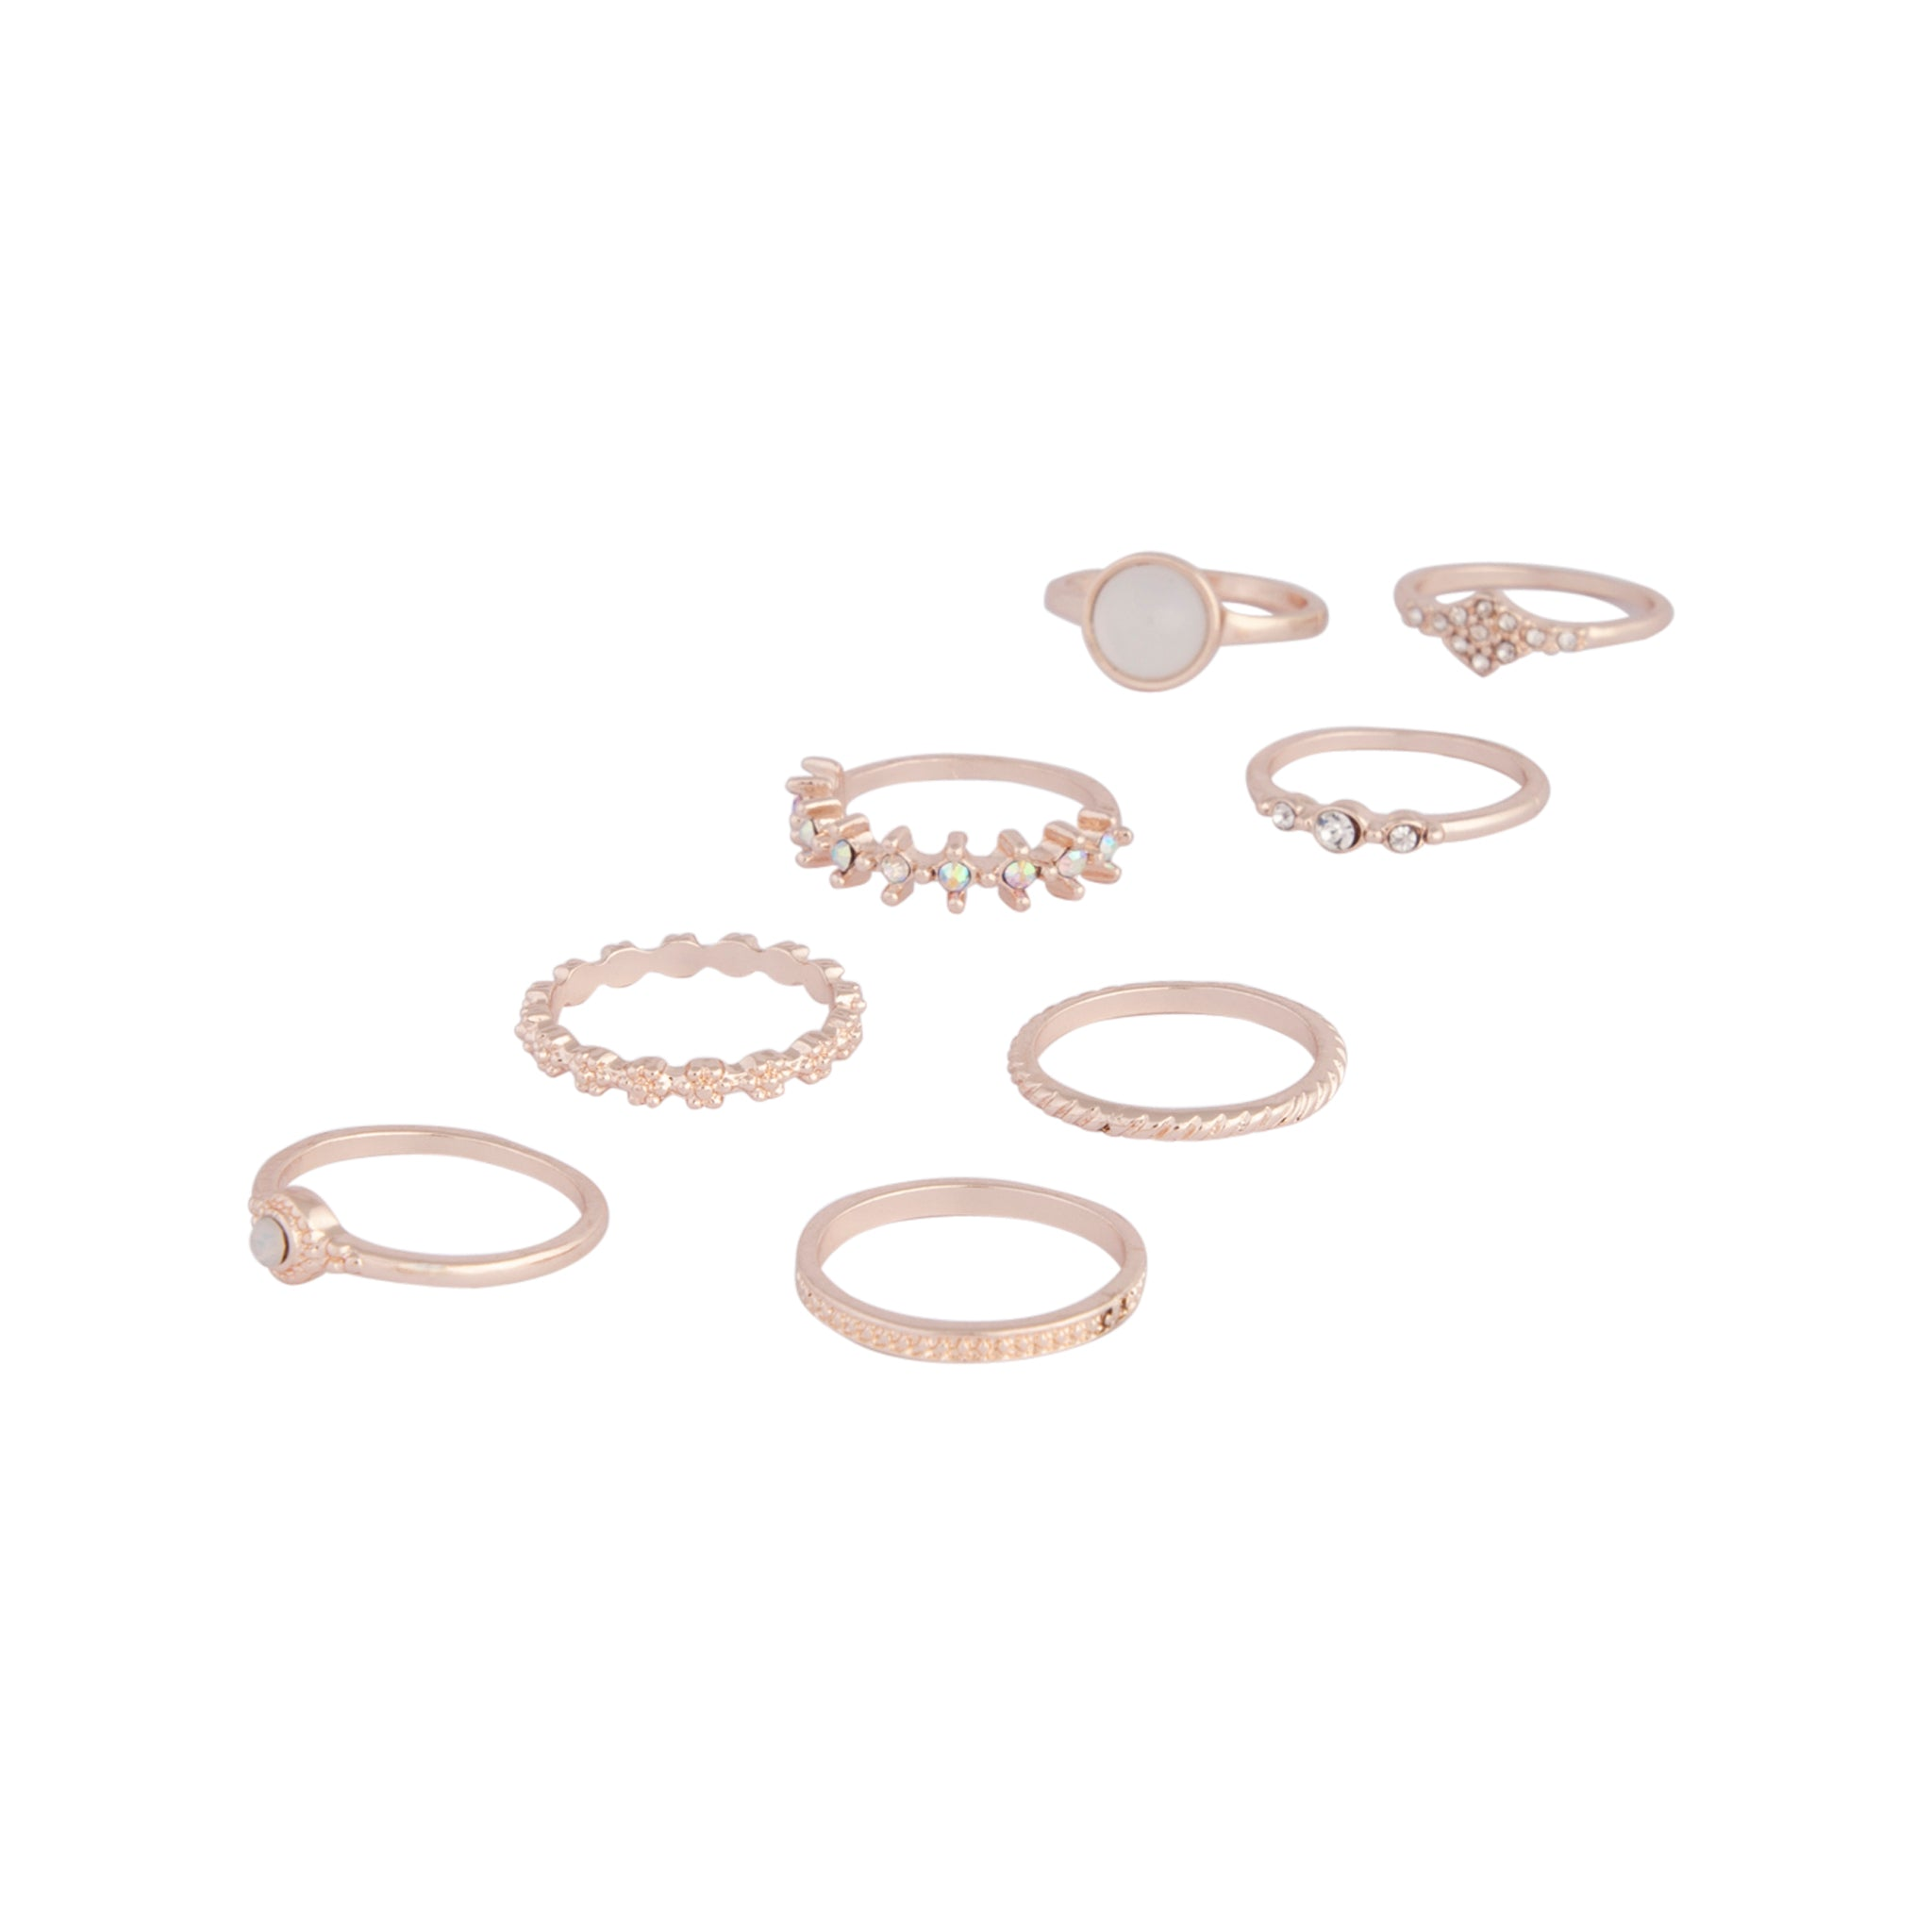 Rose Gold Textured Stone Ring 8 Pack